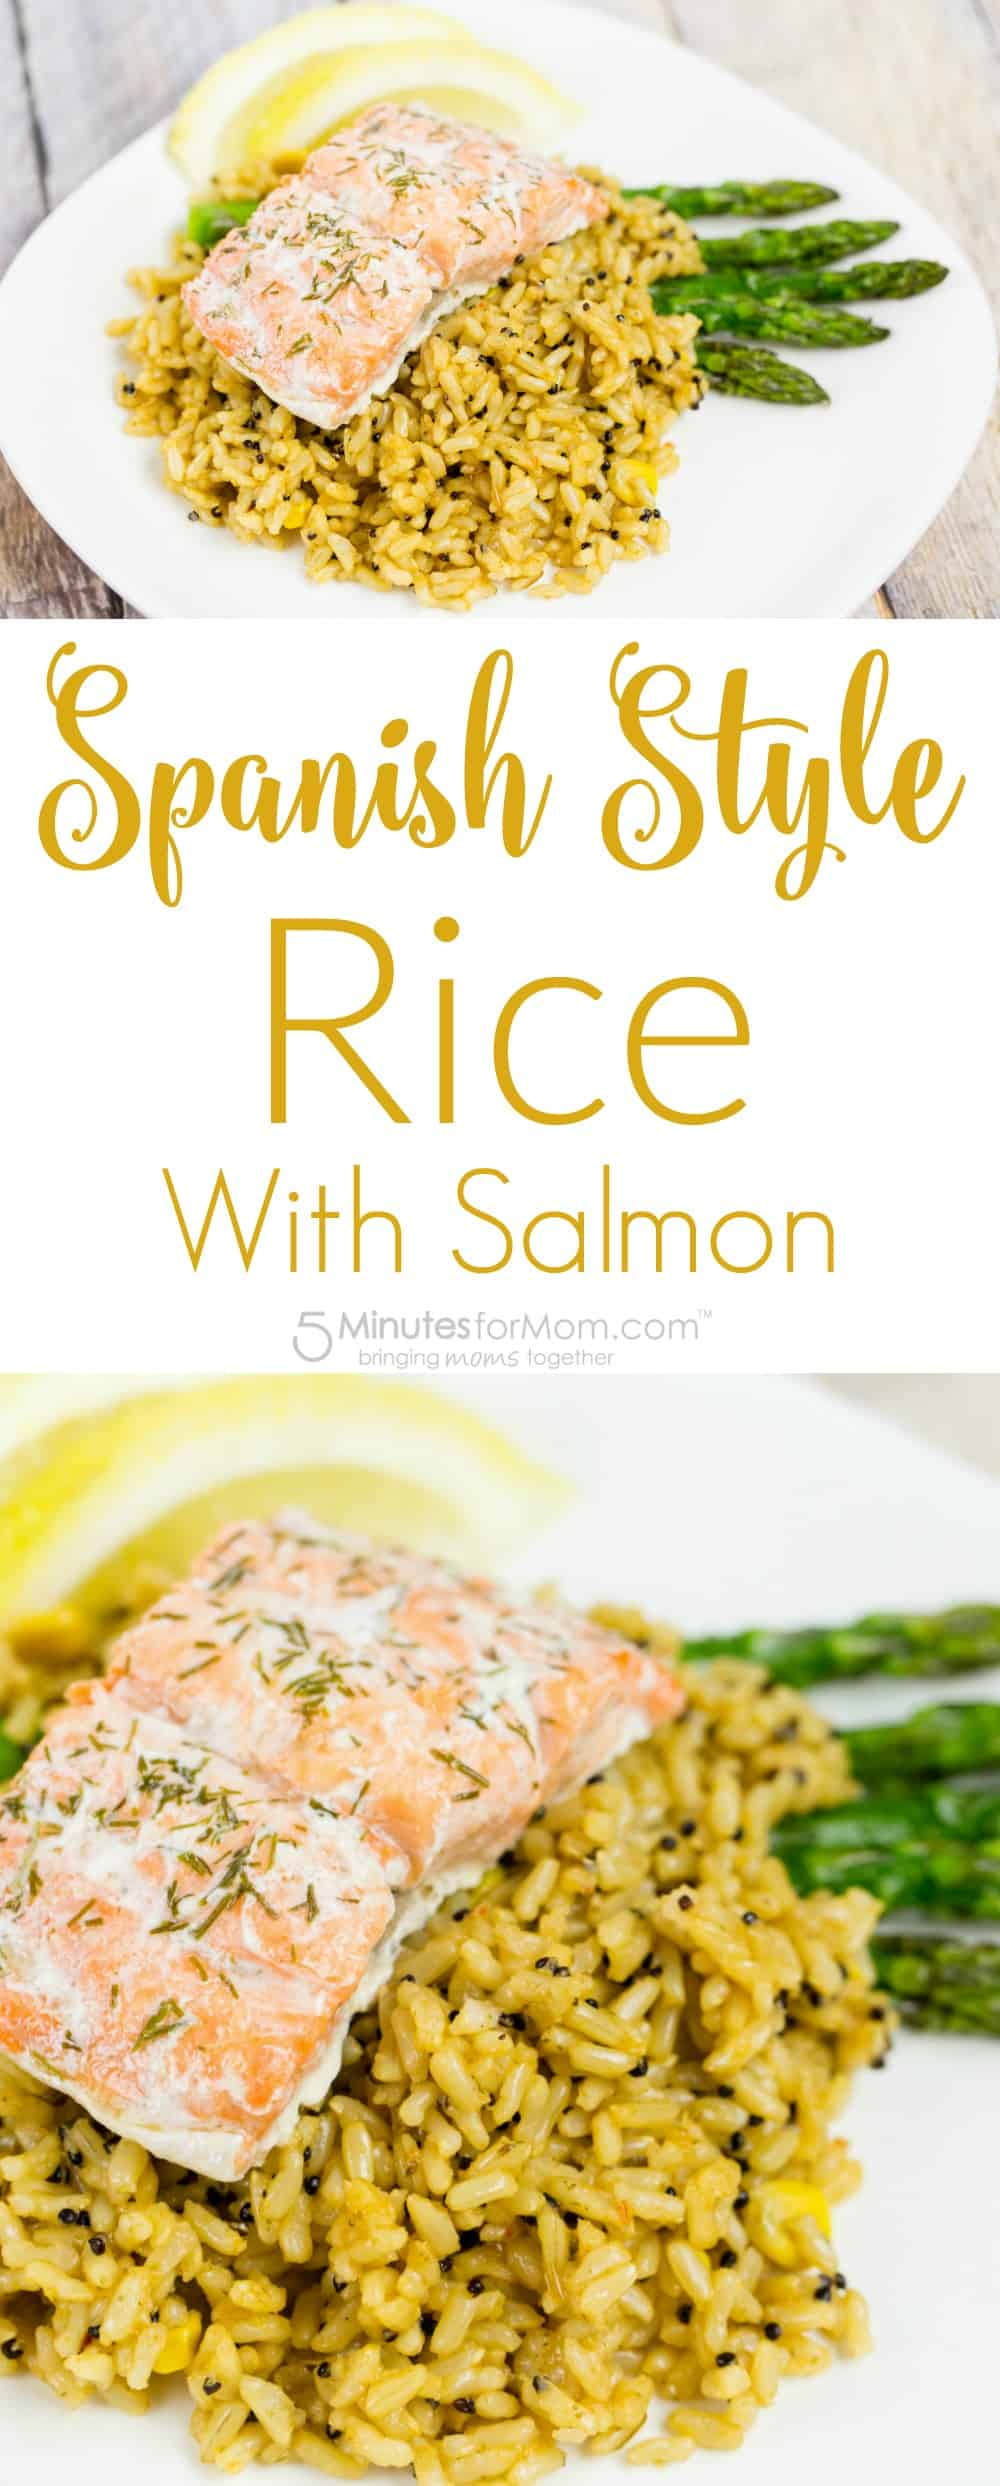 Spanish Style Rice with Salmon